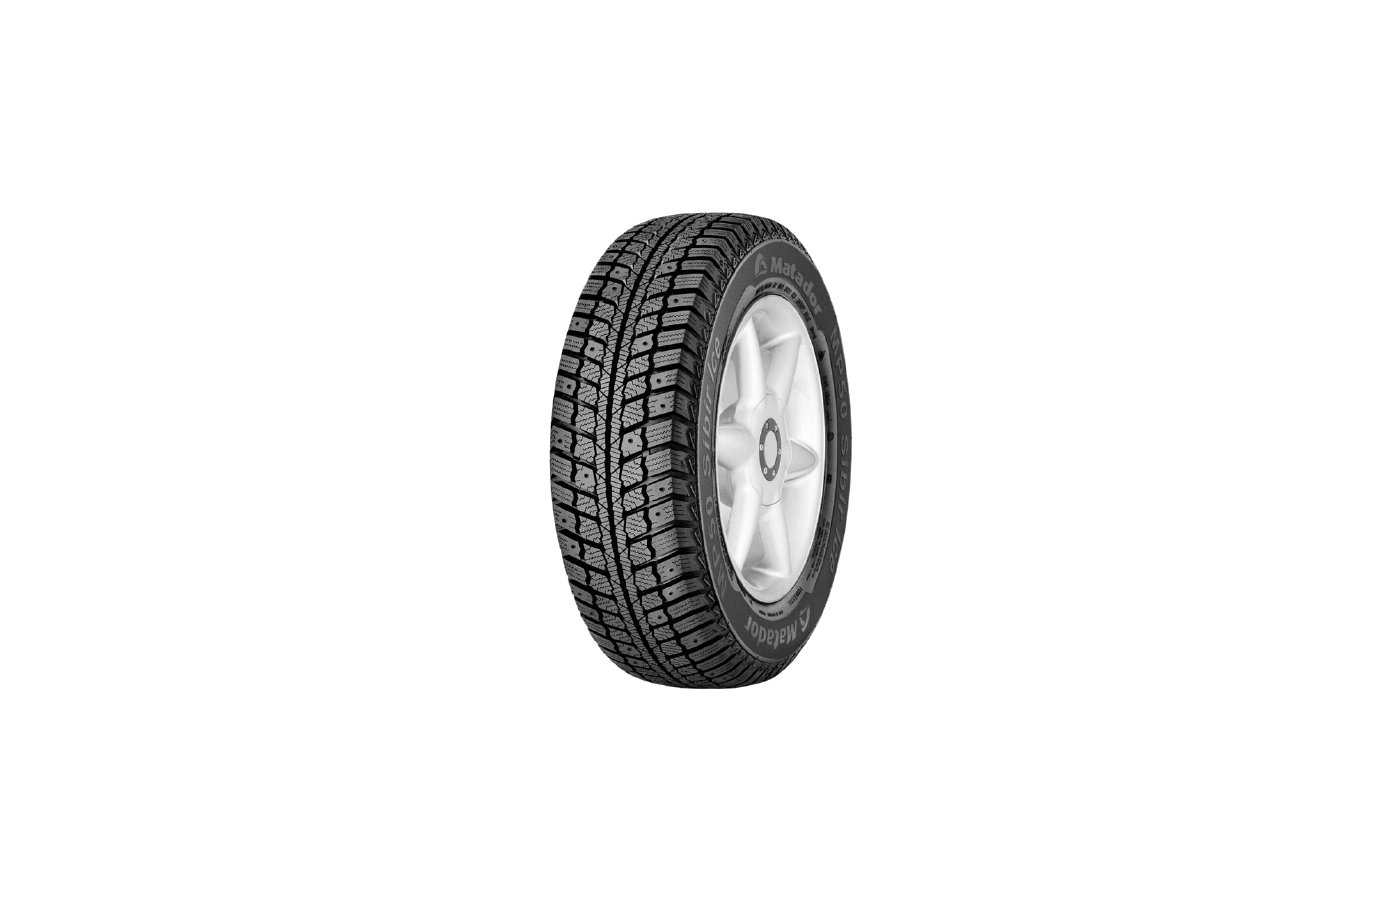 Шина Matador MP 50 Sibir Ice 195/65 R15 TL 91T шип